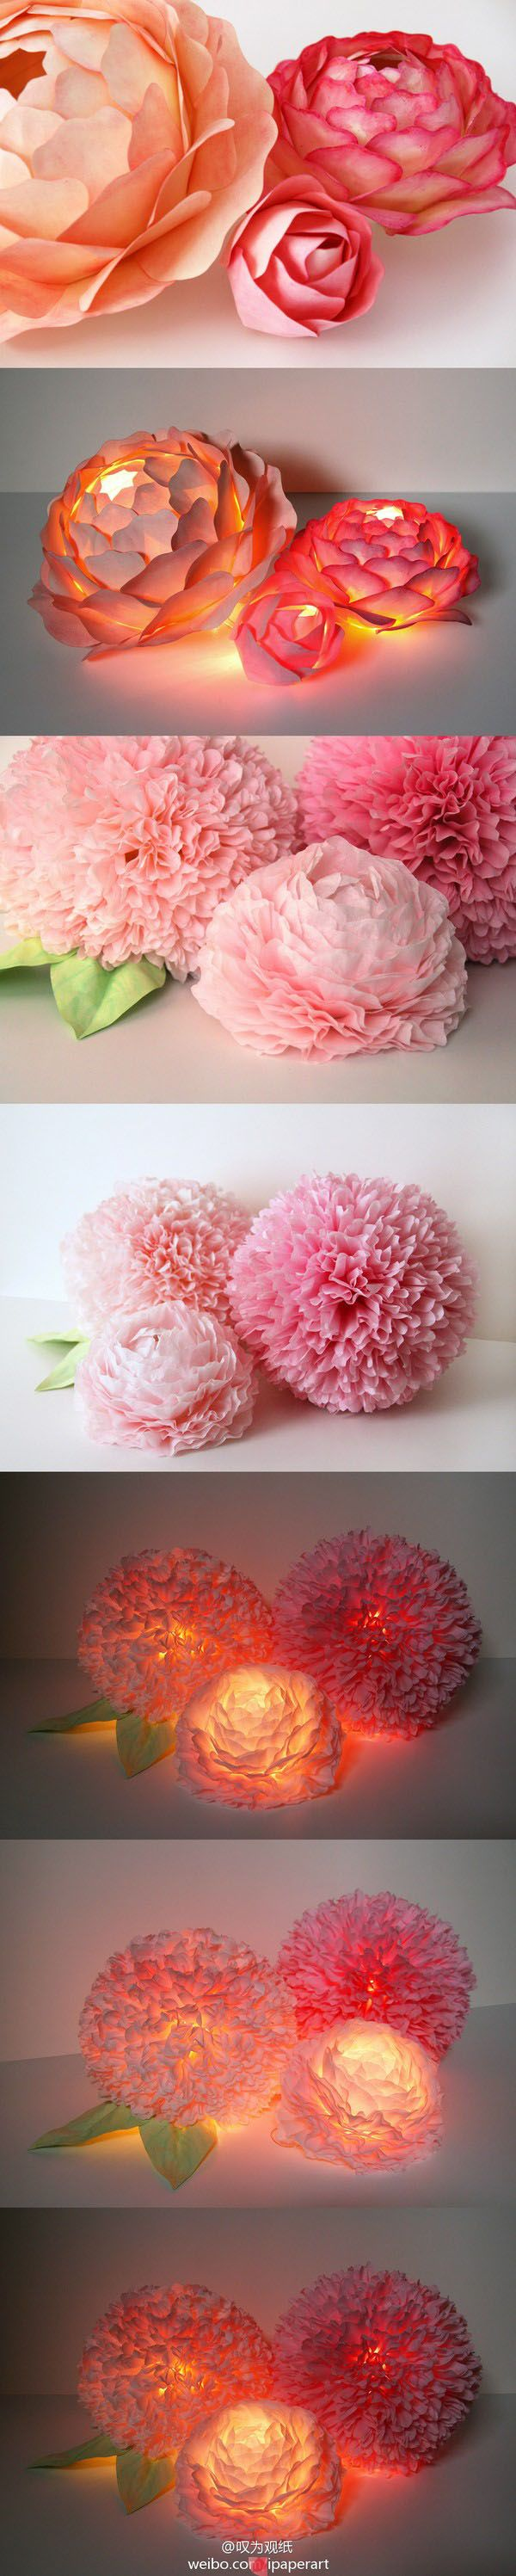 Paper Flower Centerpiece with LED Lighting—What a beautiful and crafty way to set the mood!